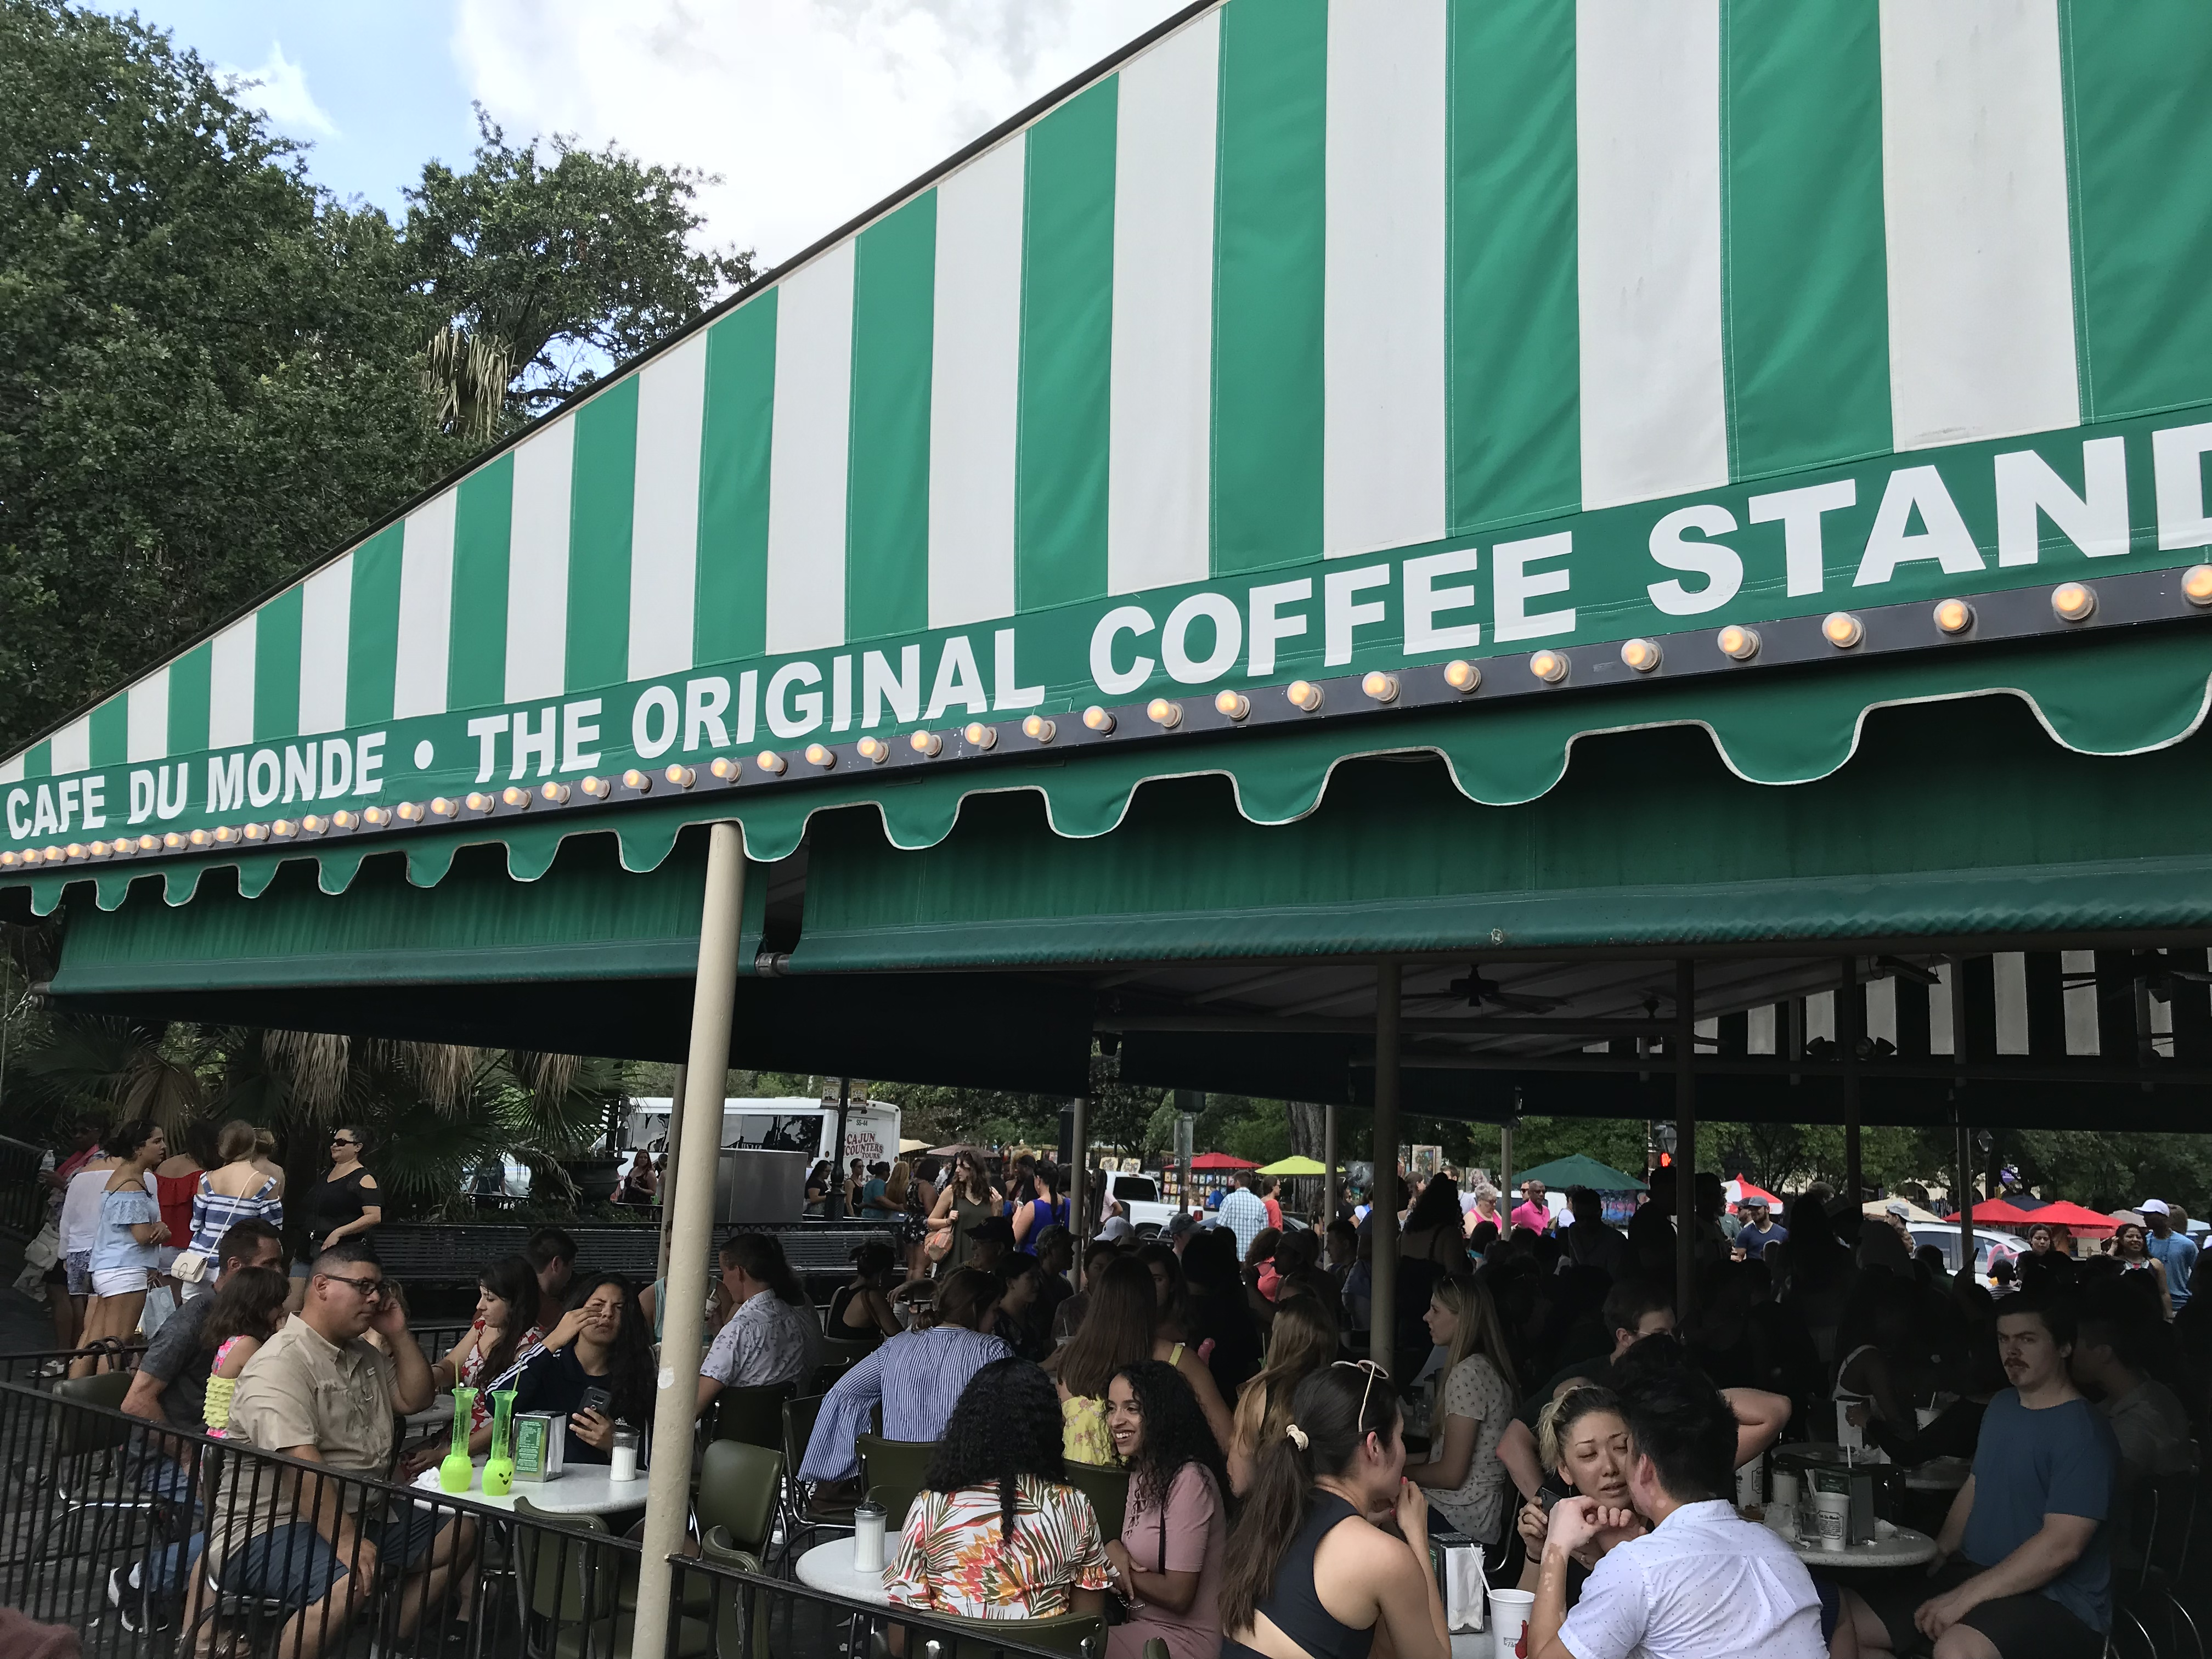 Cafe Du Monde Coffee Stand sign seen over a packed cafe